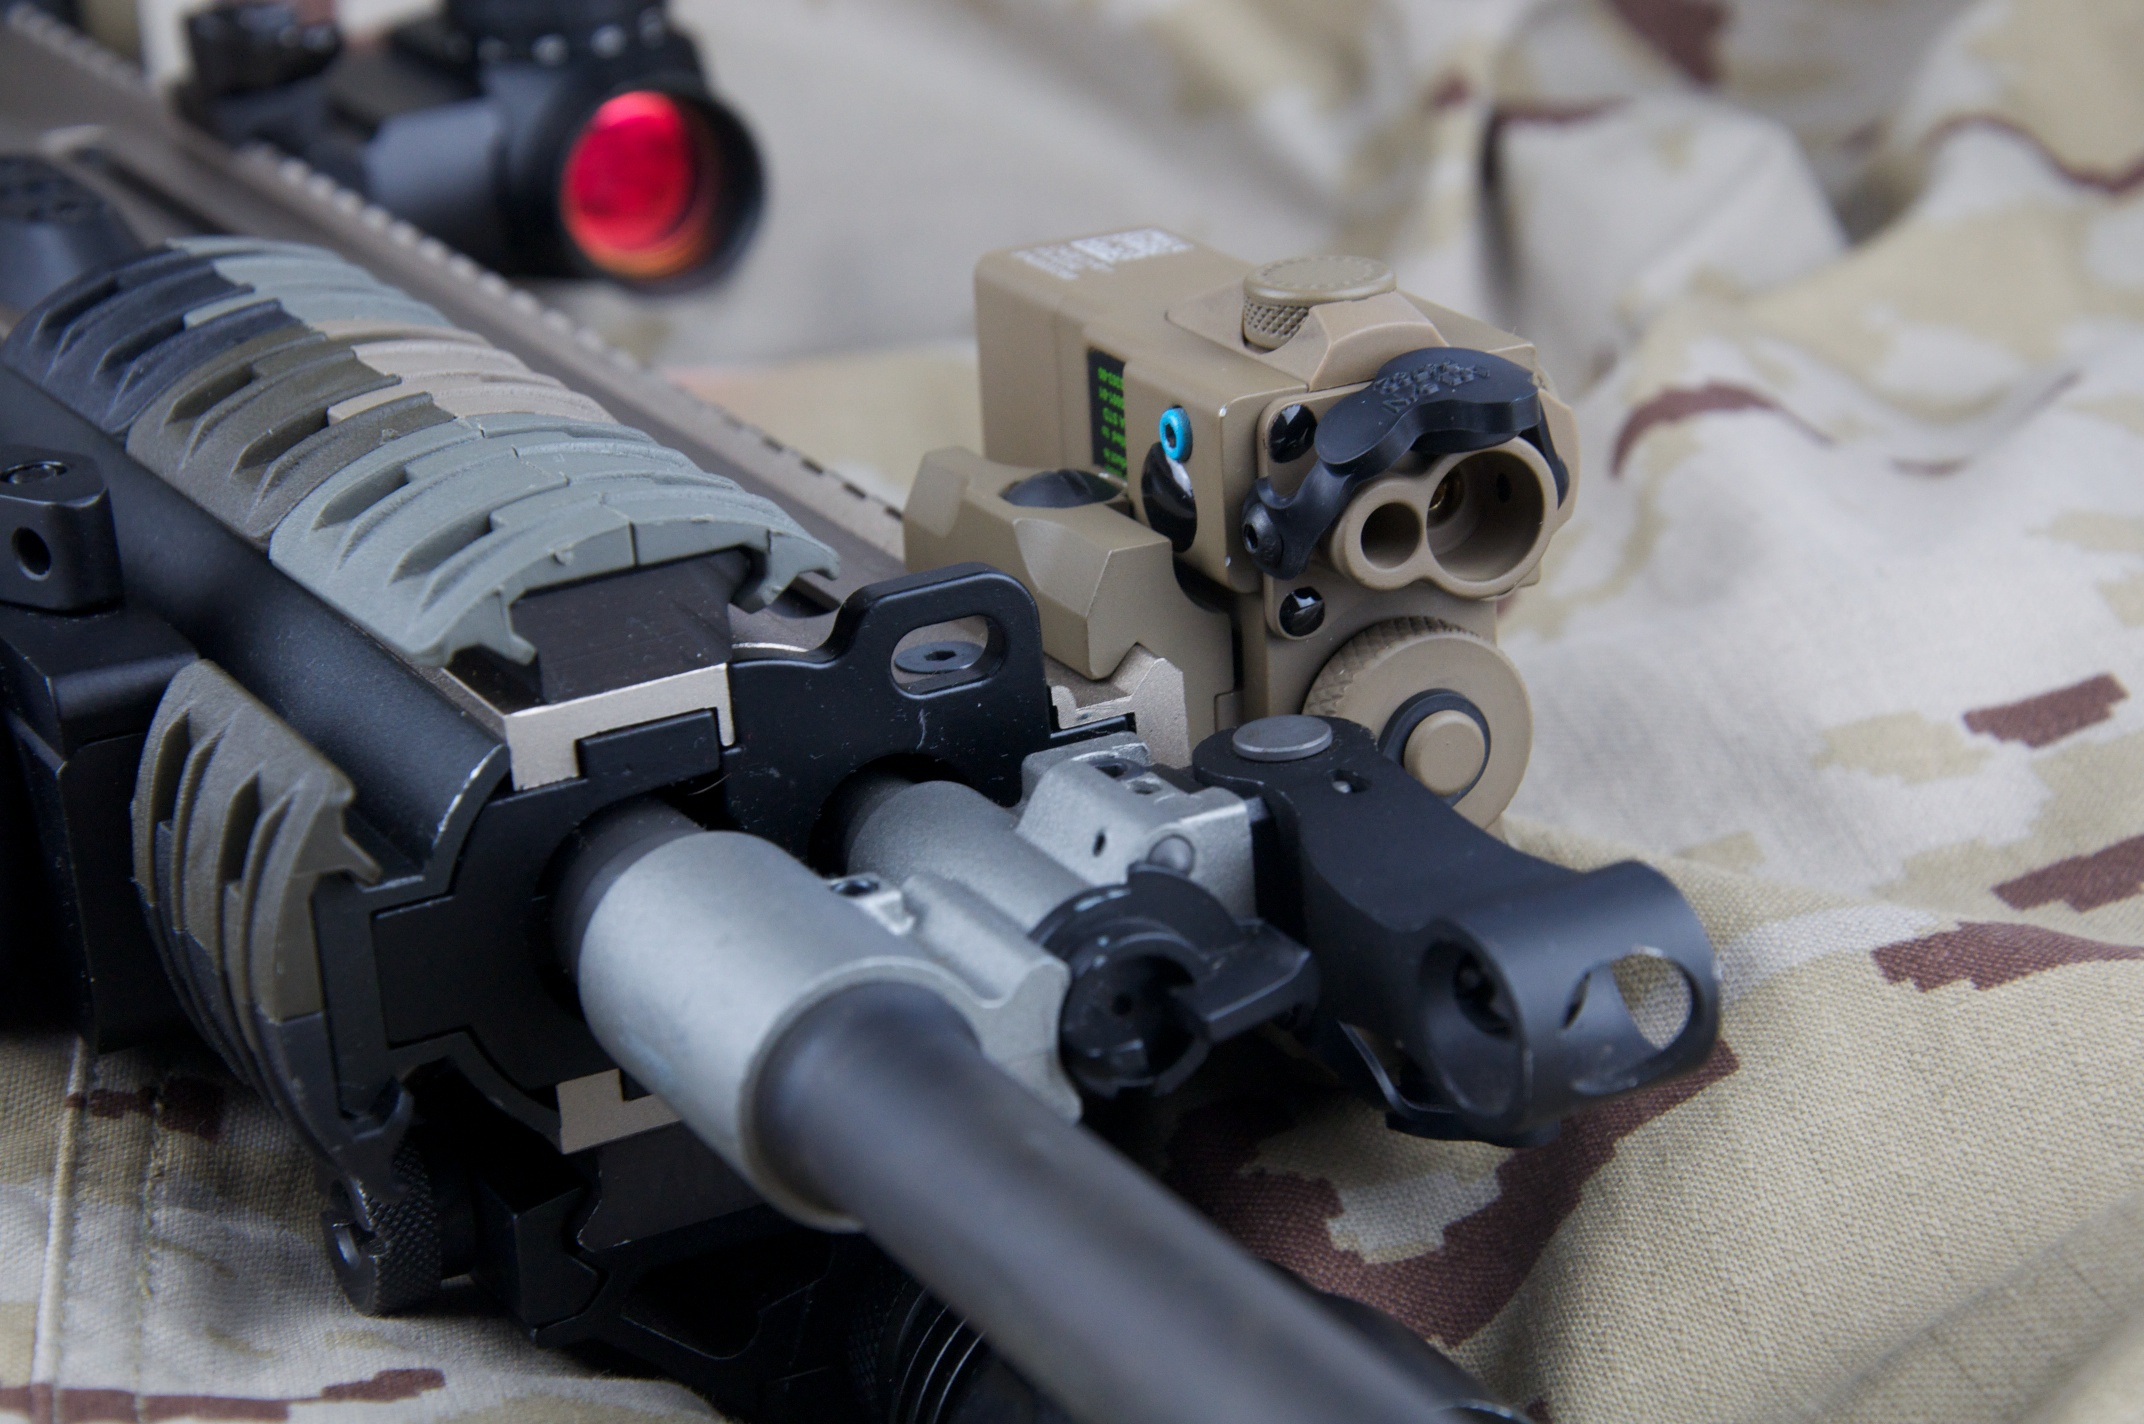 G&P DBAL-A2 Dual Laser Designator and Illuminator